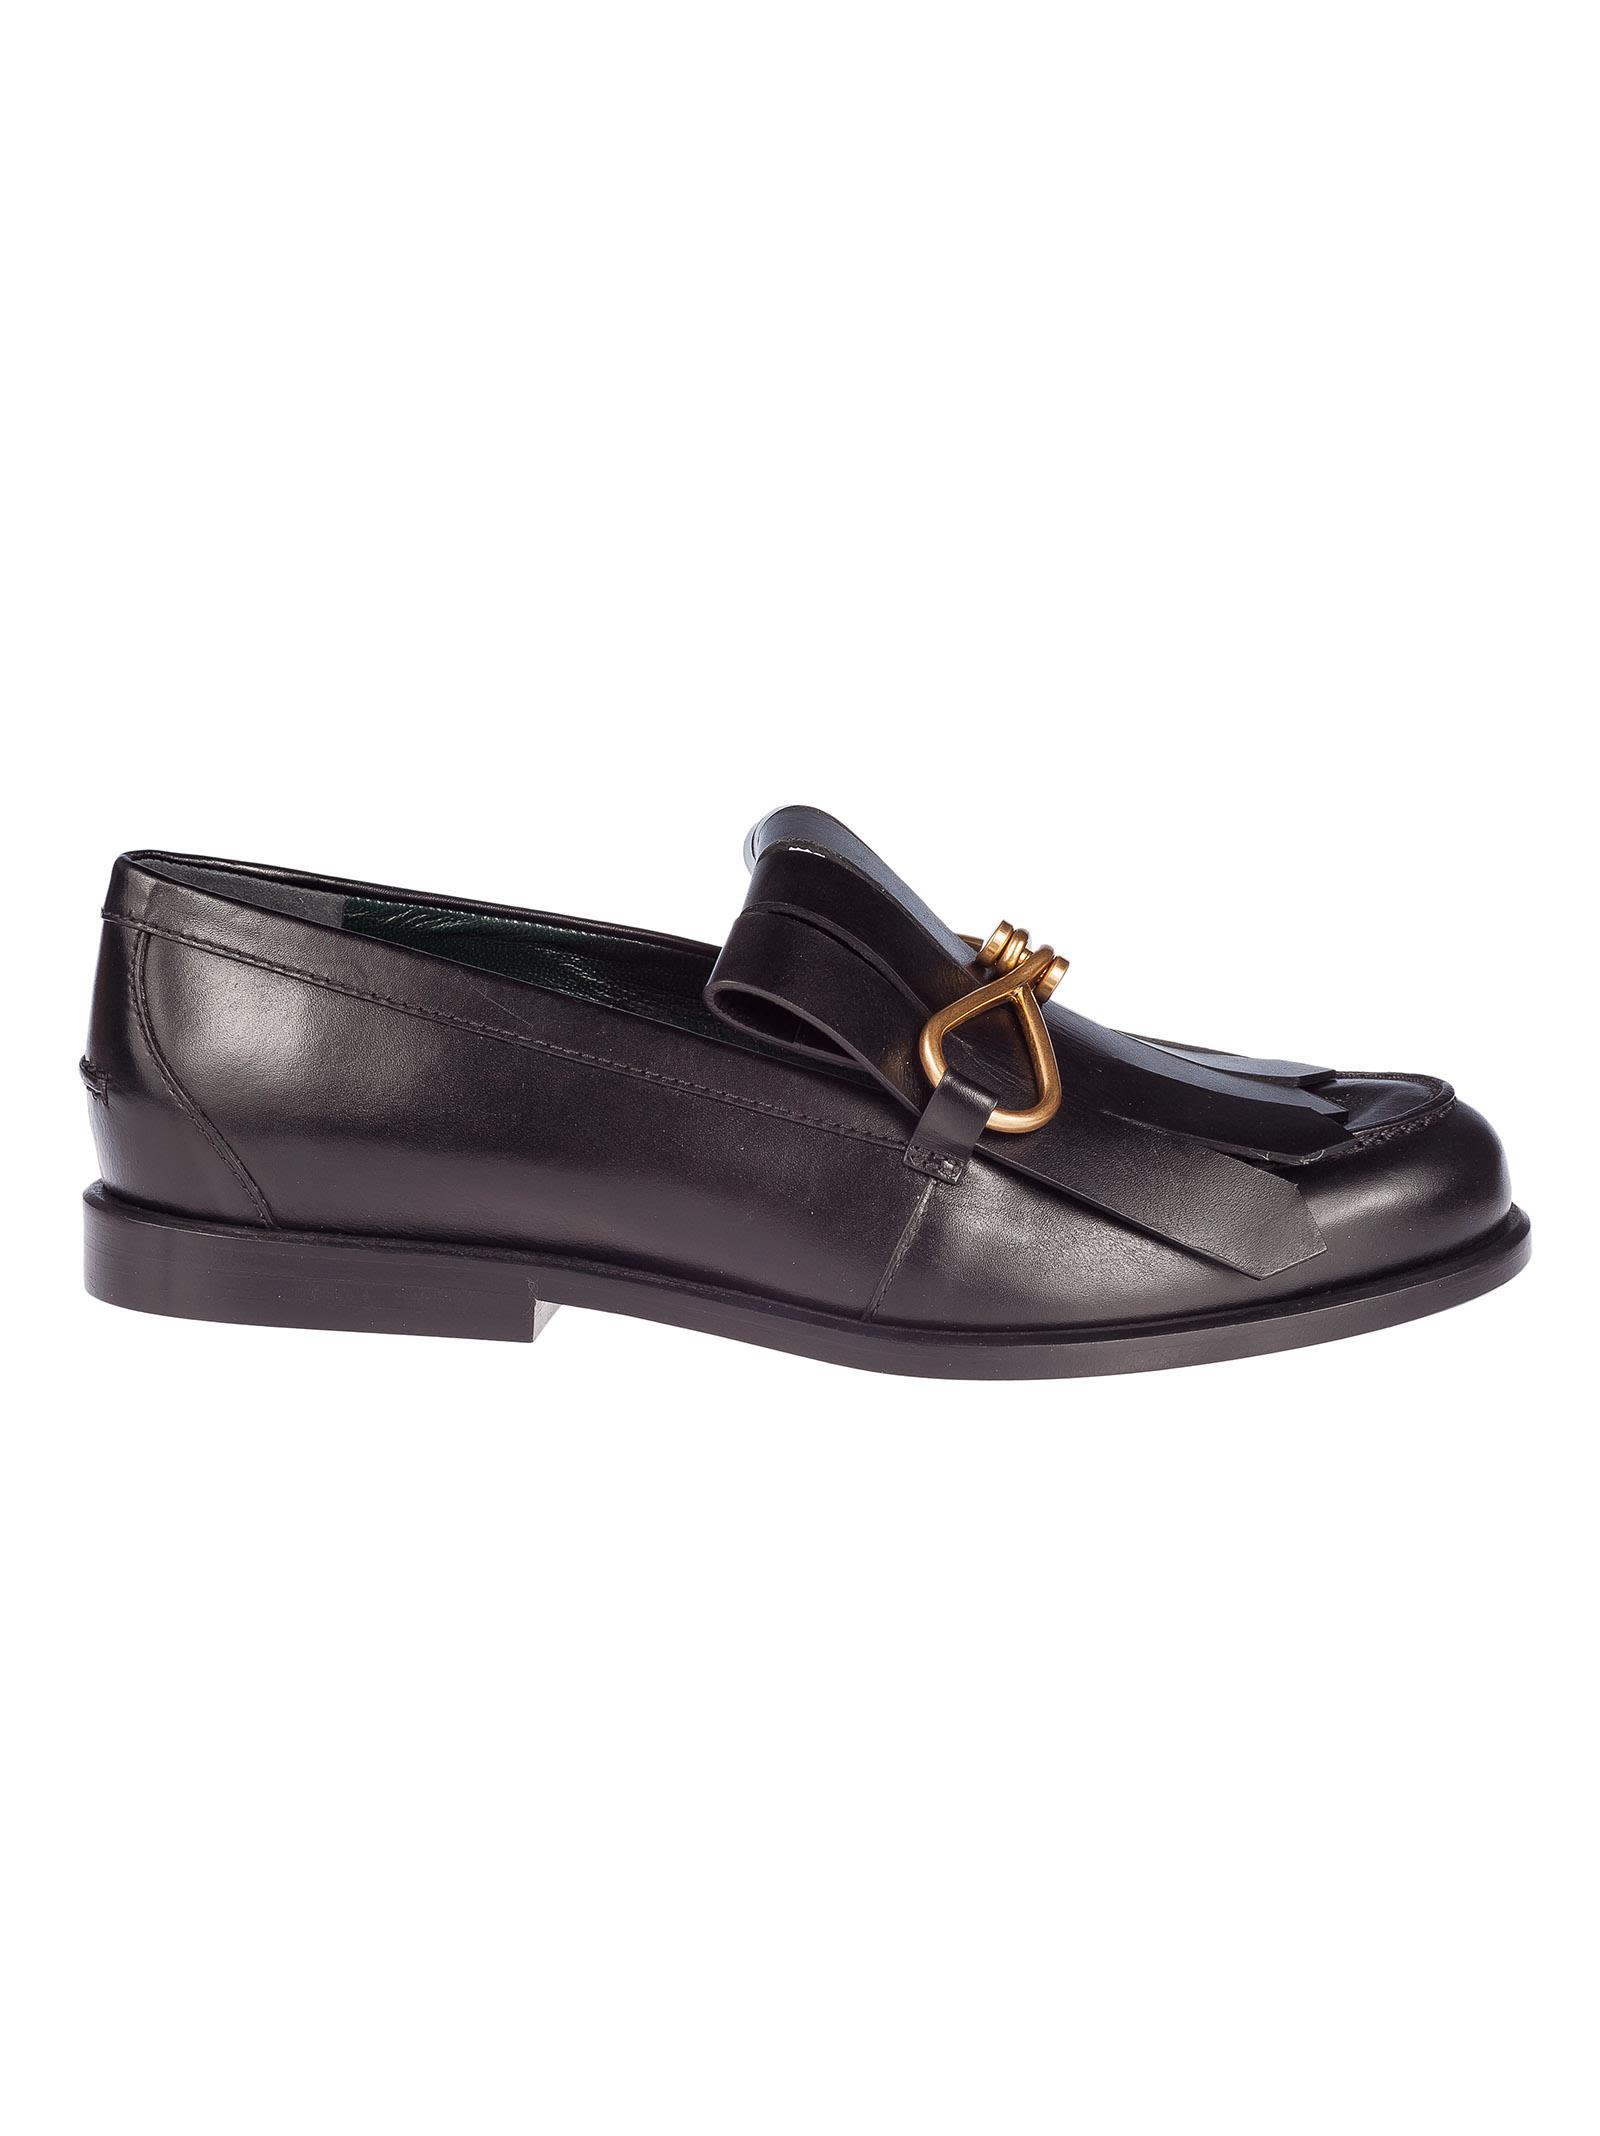 Mulberry Fringed Loafers